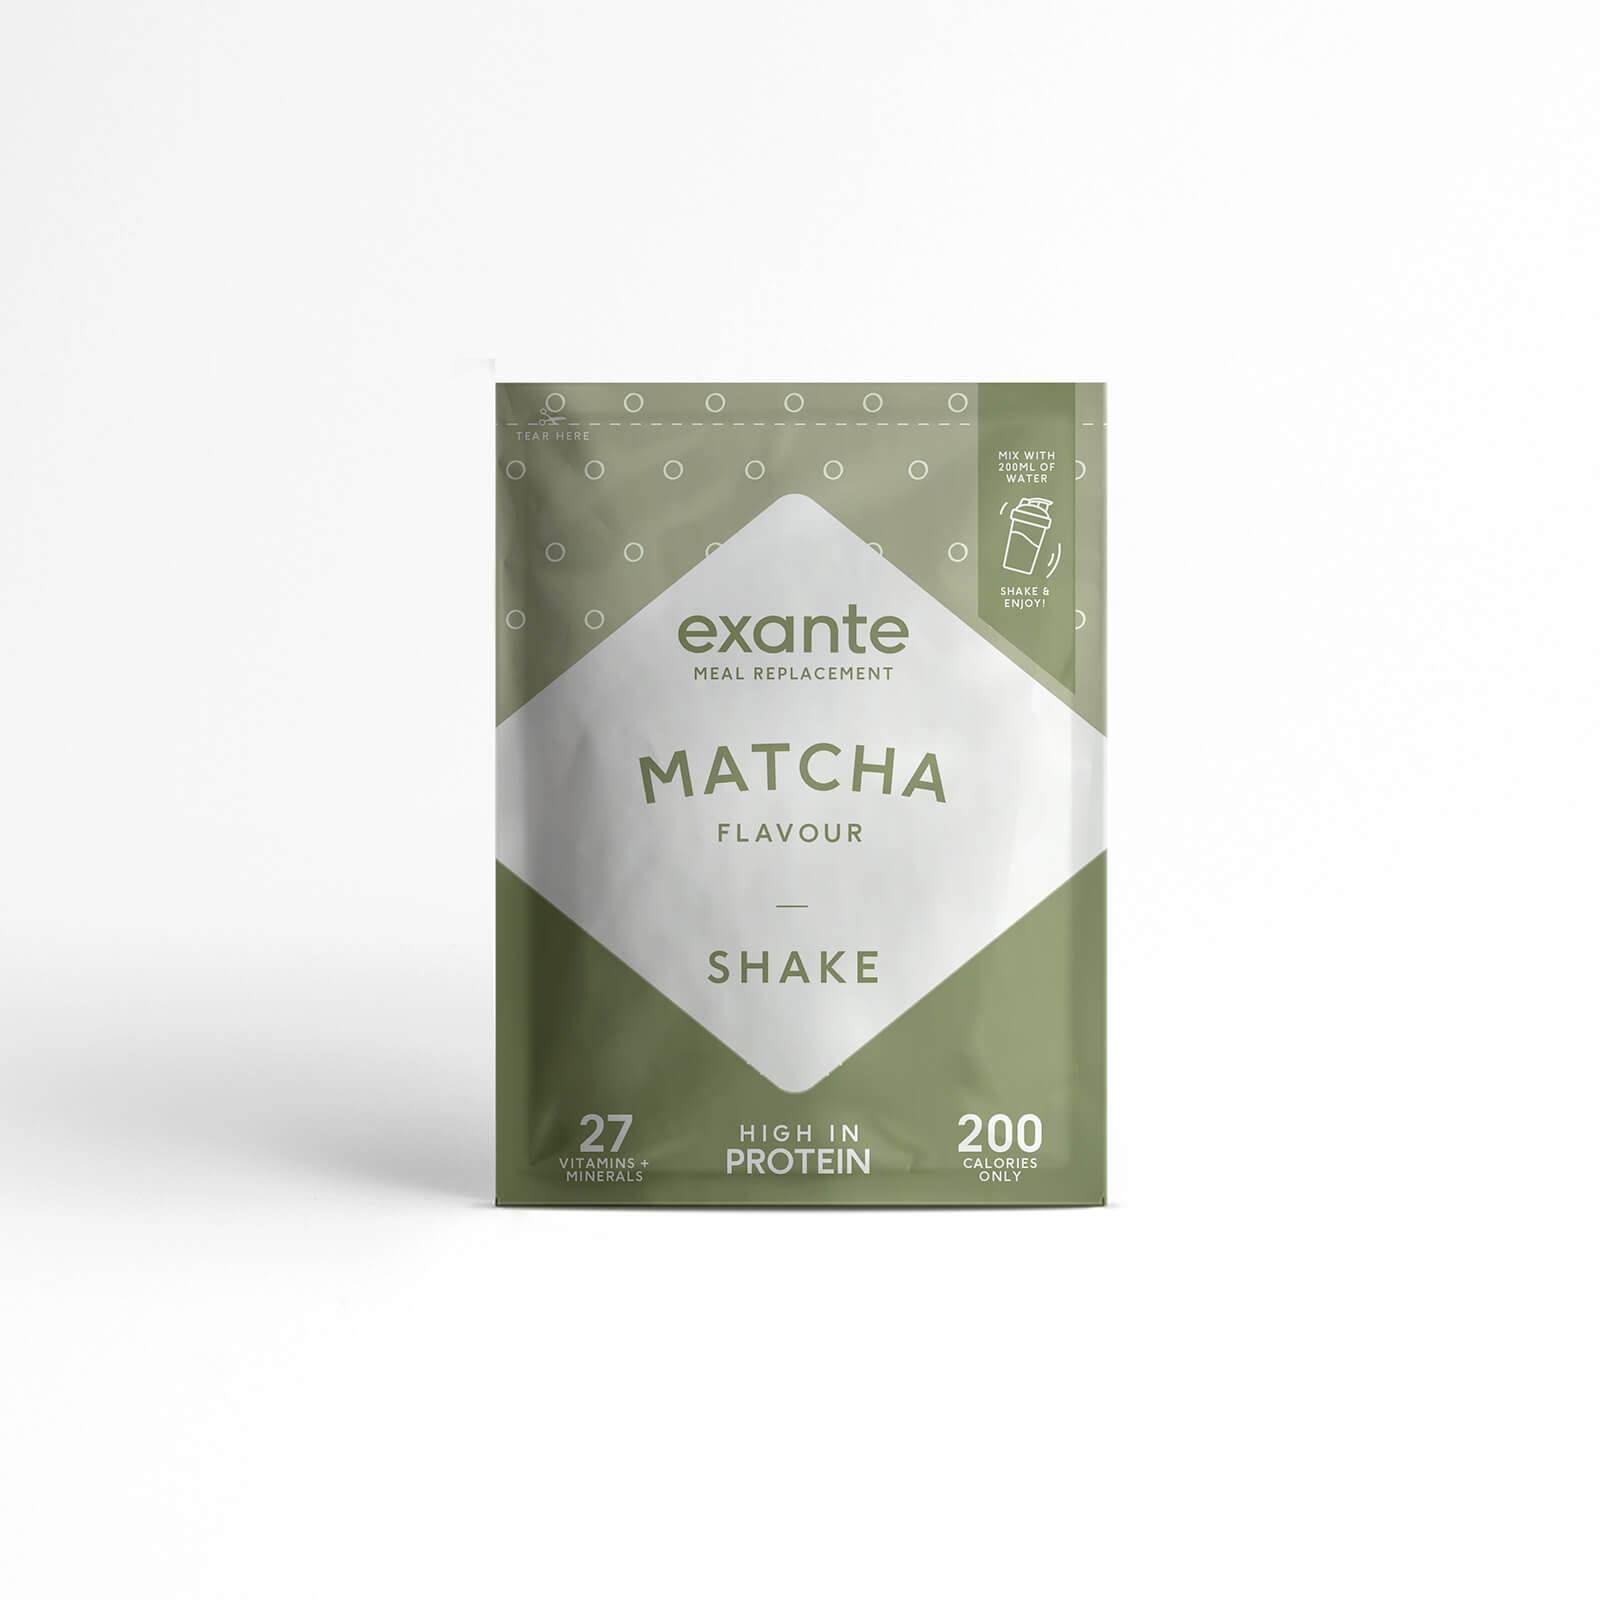 Exante Diet Meal Replacement Matcha Shake